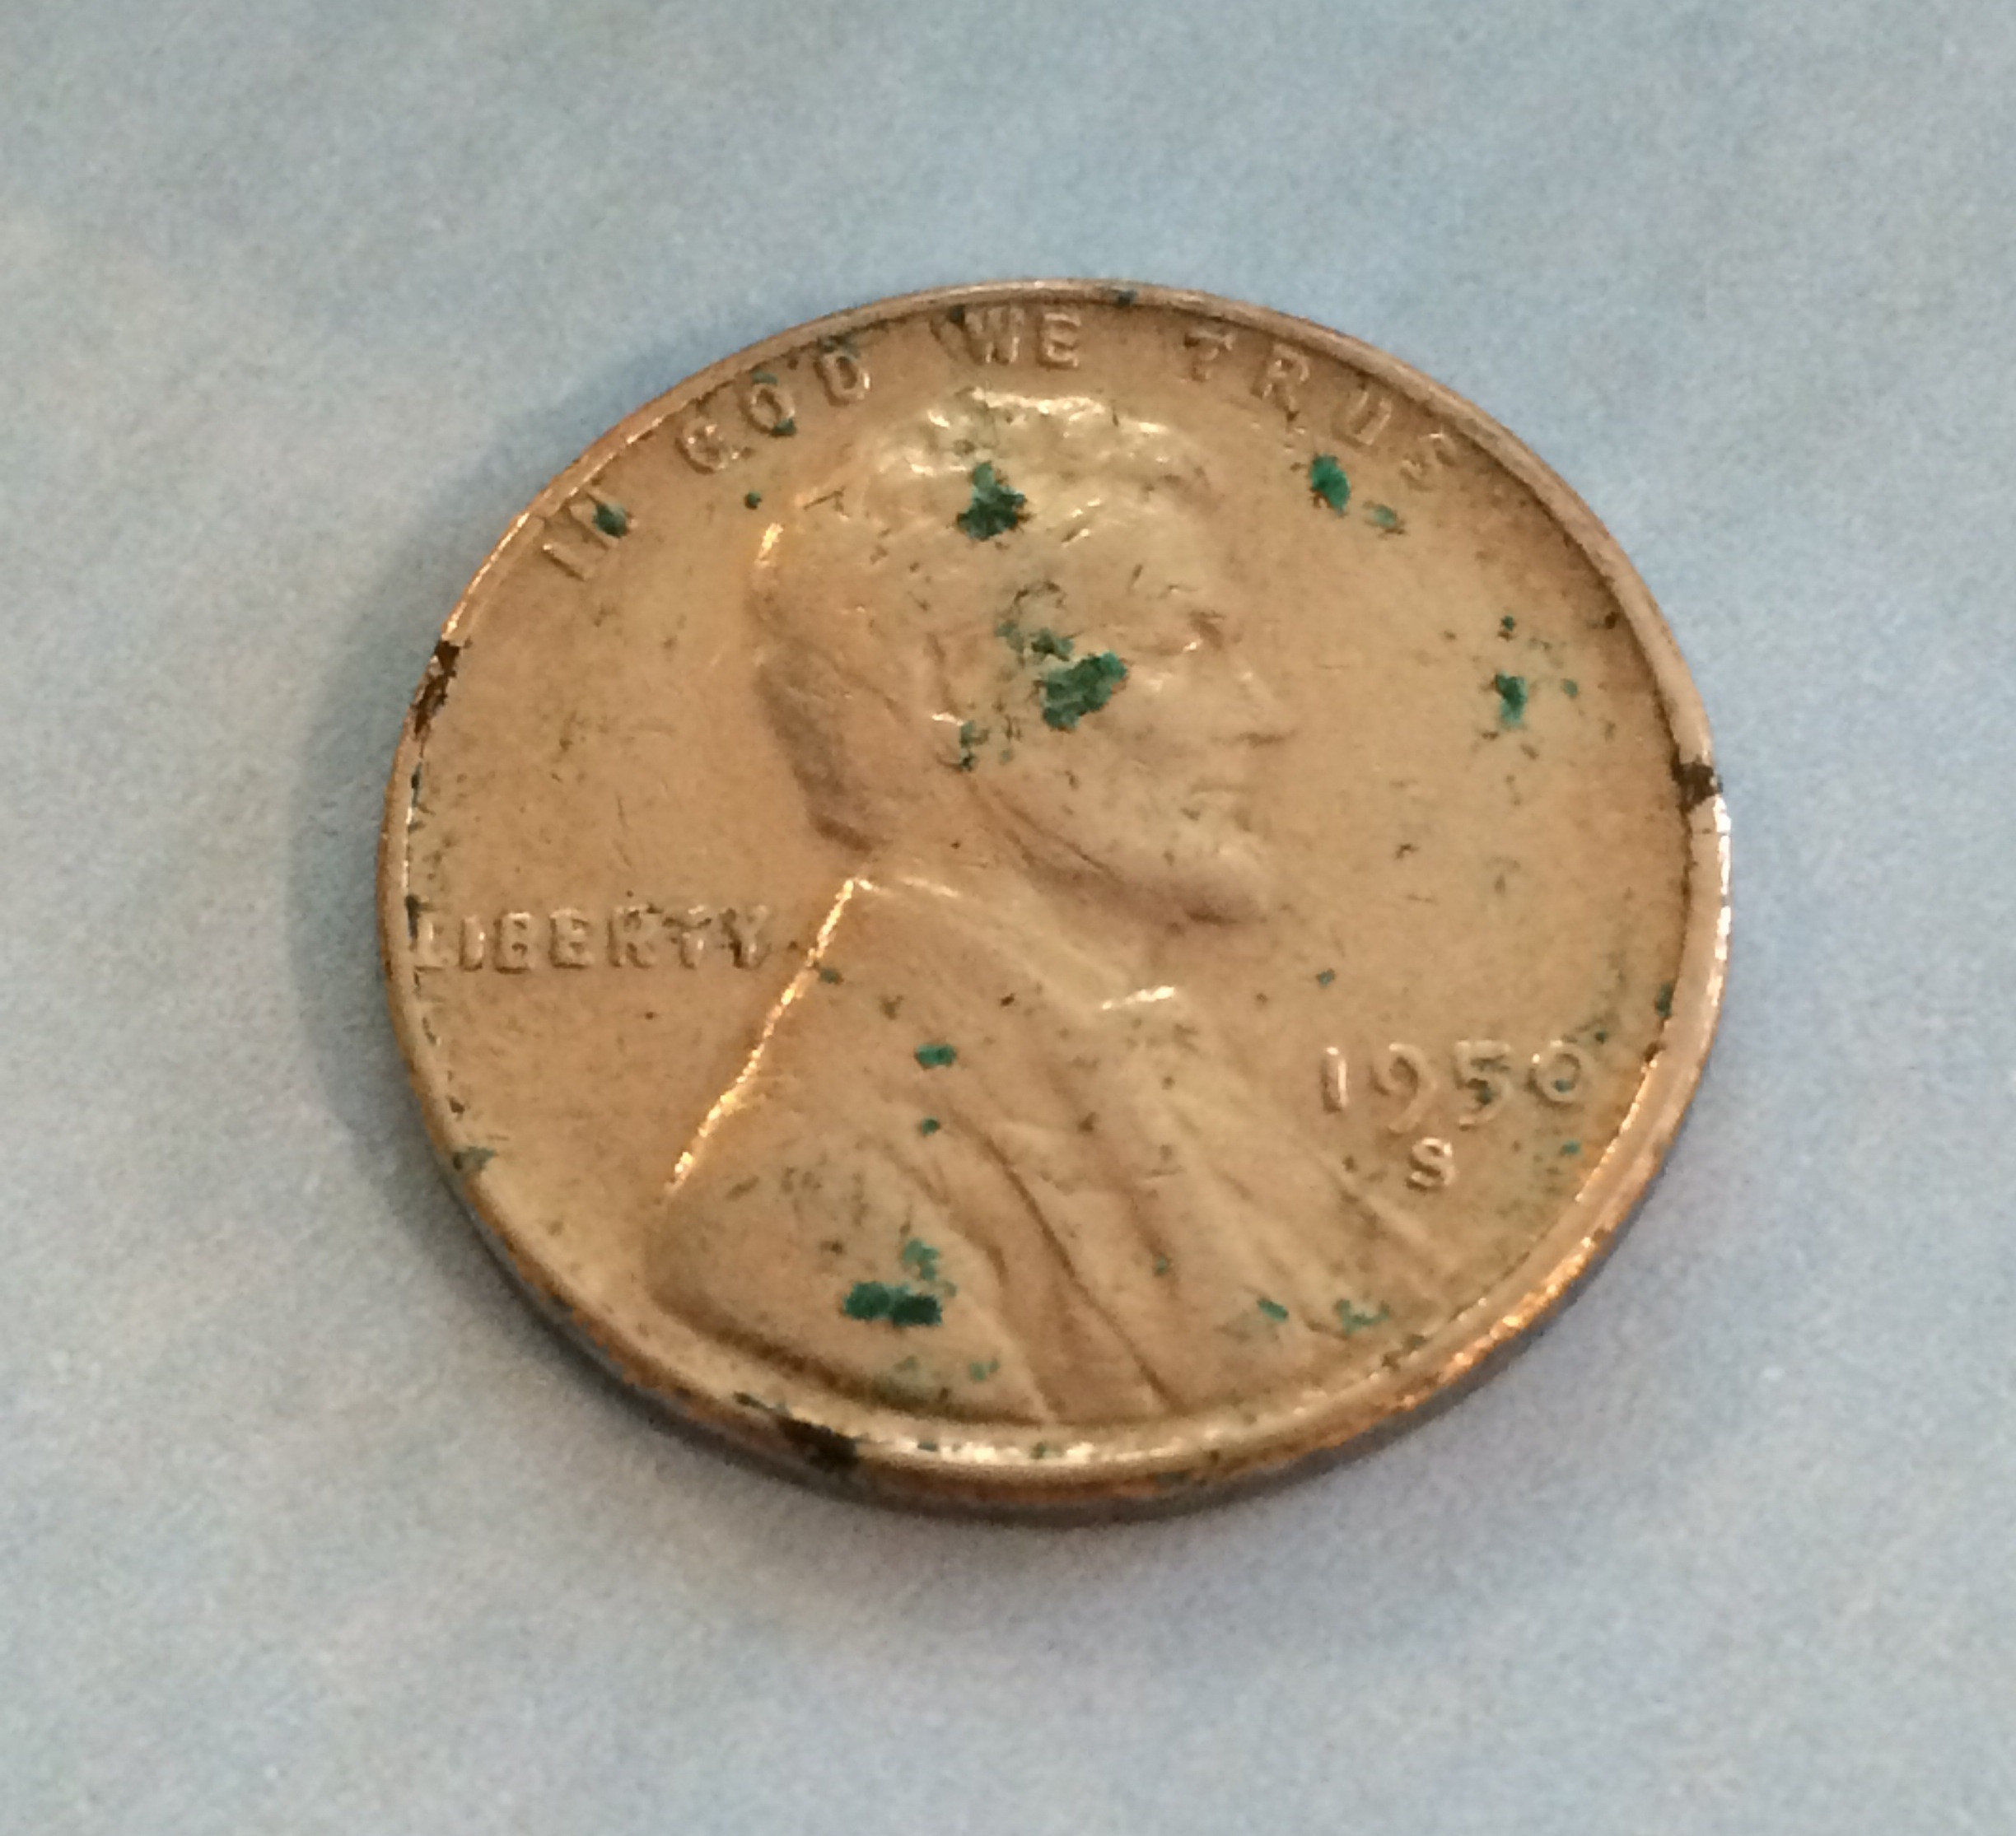 Best Of 1950 S Wheat Penny that is Silver Silver Wheat Penny Of Awesome 48 Pics Silver Wheat Penny